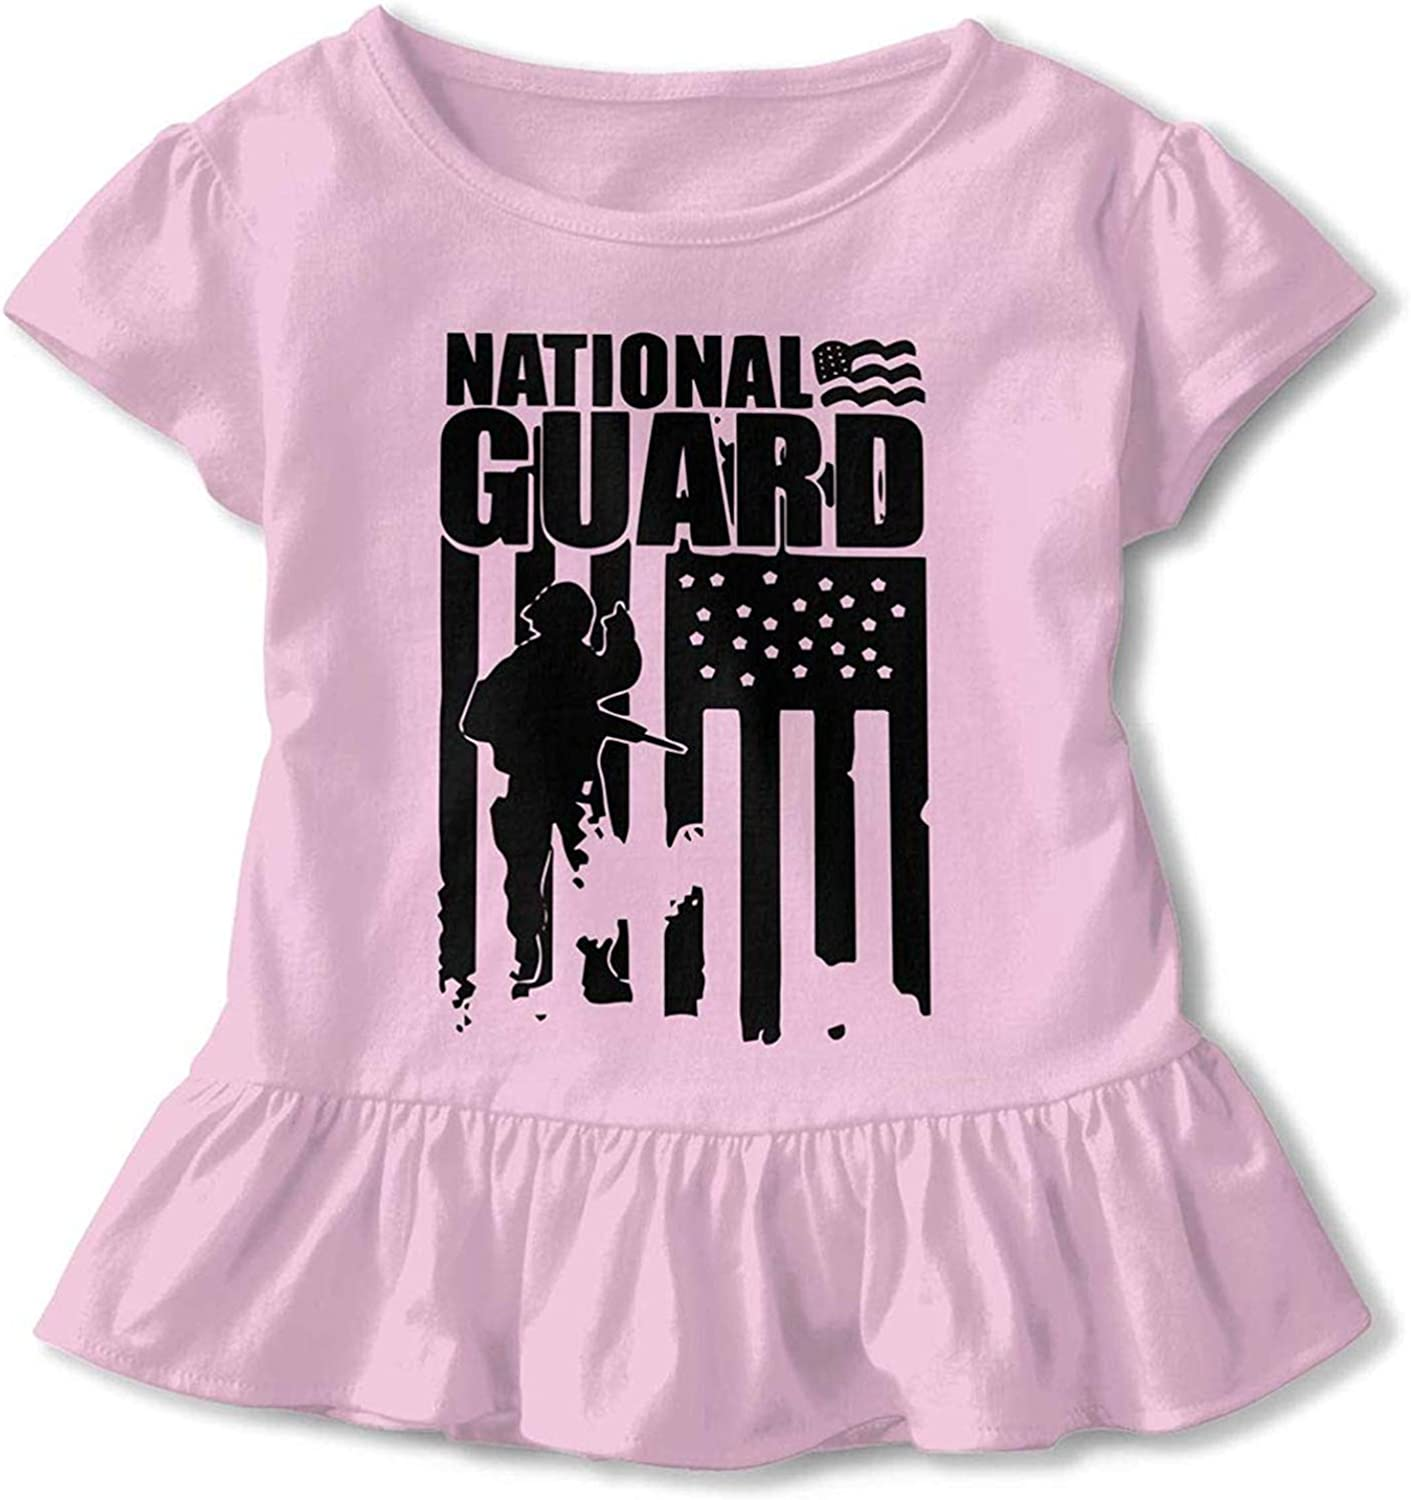 National Guard Patriotic Army American Flag 2-6 Years Old Children Short-Sleeved T-Shirt